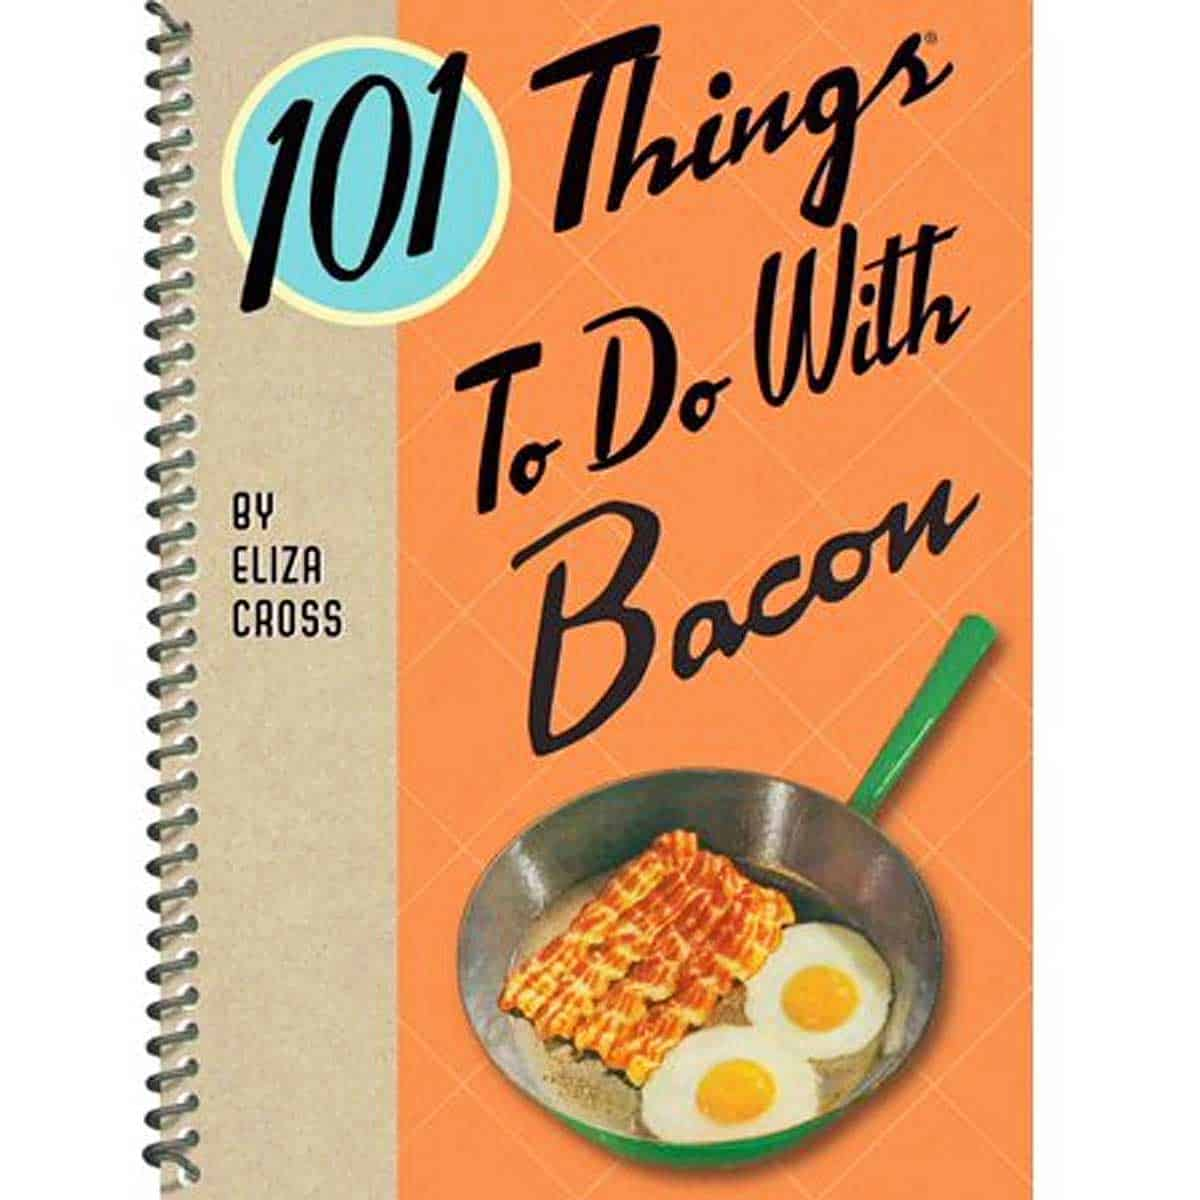 The front cover of the cookbook !01 Things To Do With Bacon by Eliza Cross